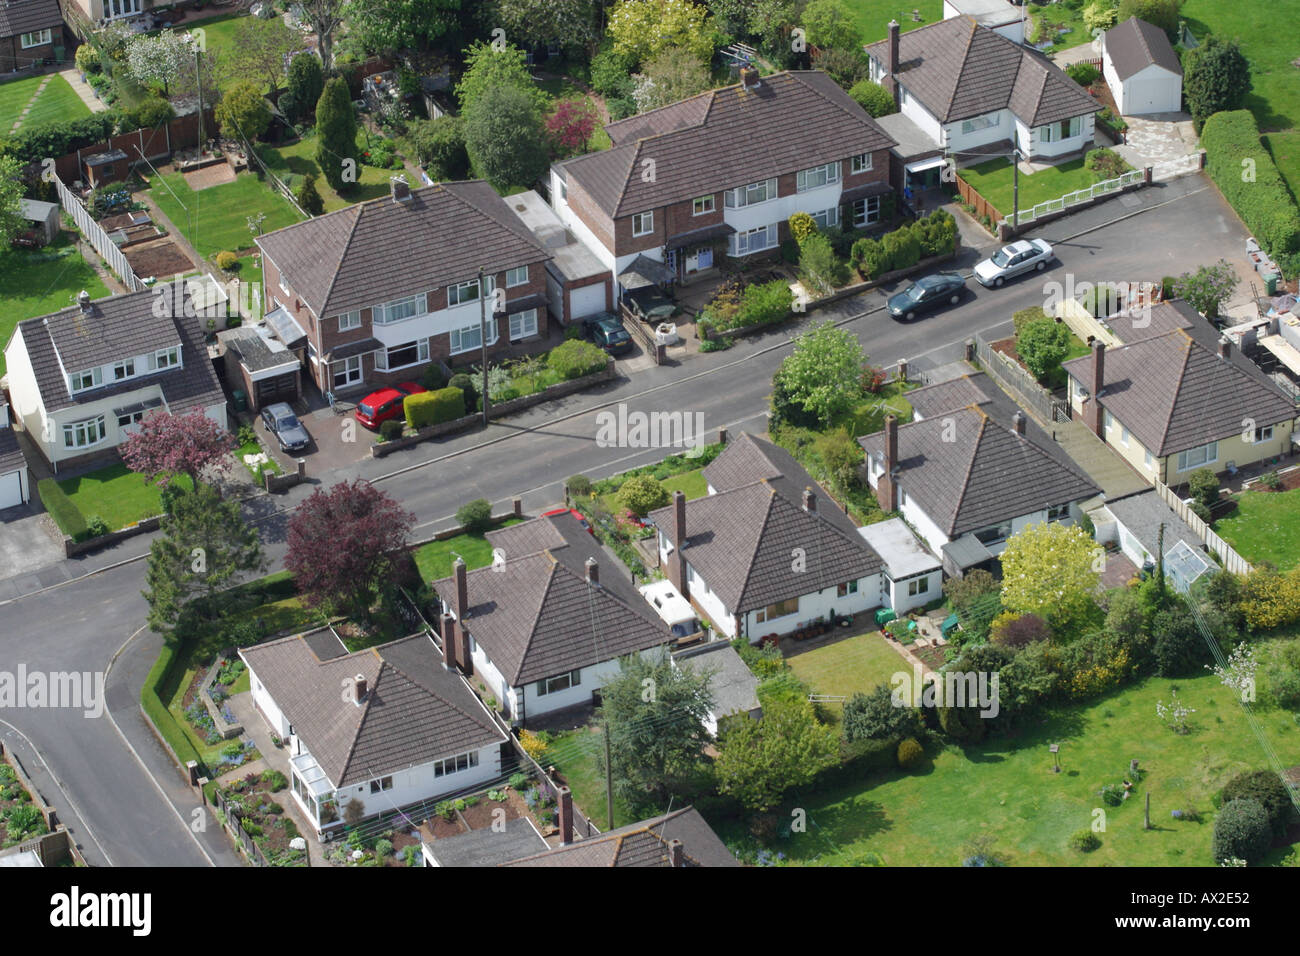 aerial view of british town suburbia showing housing gardens and road stock photo 1715793 alamy. Black Bedroom Furniture Sets. Home Design Ideas